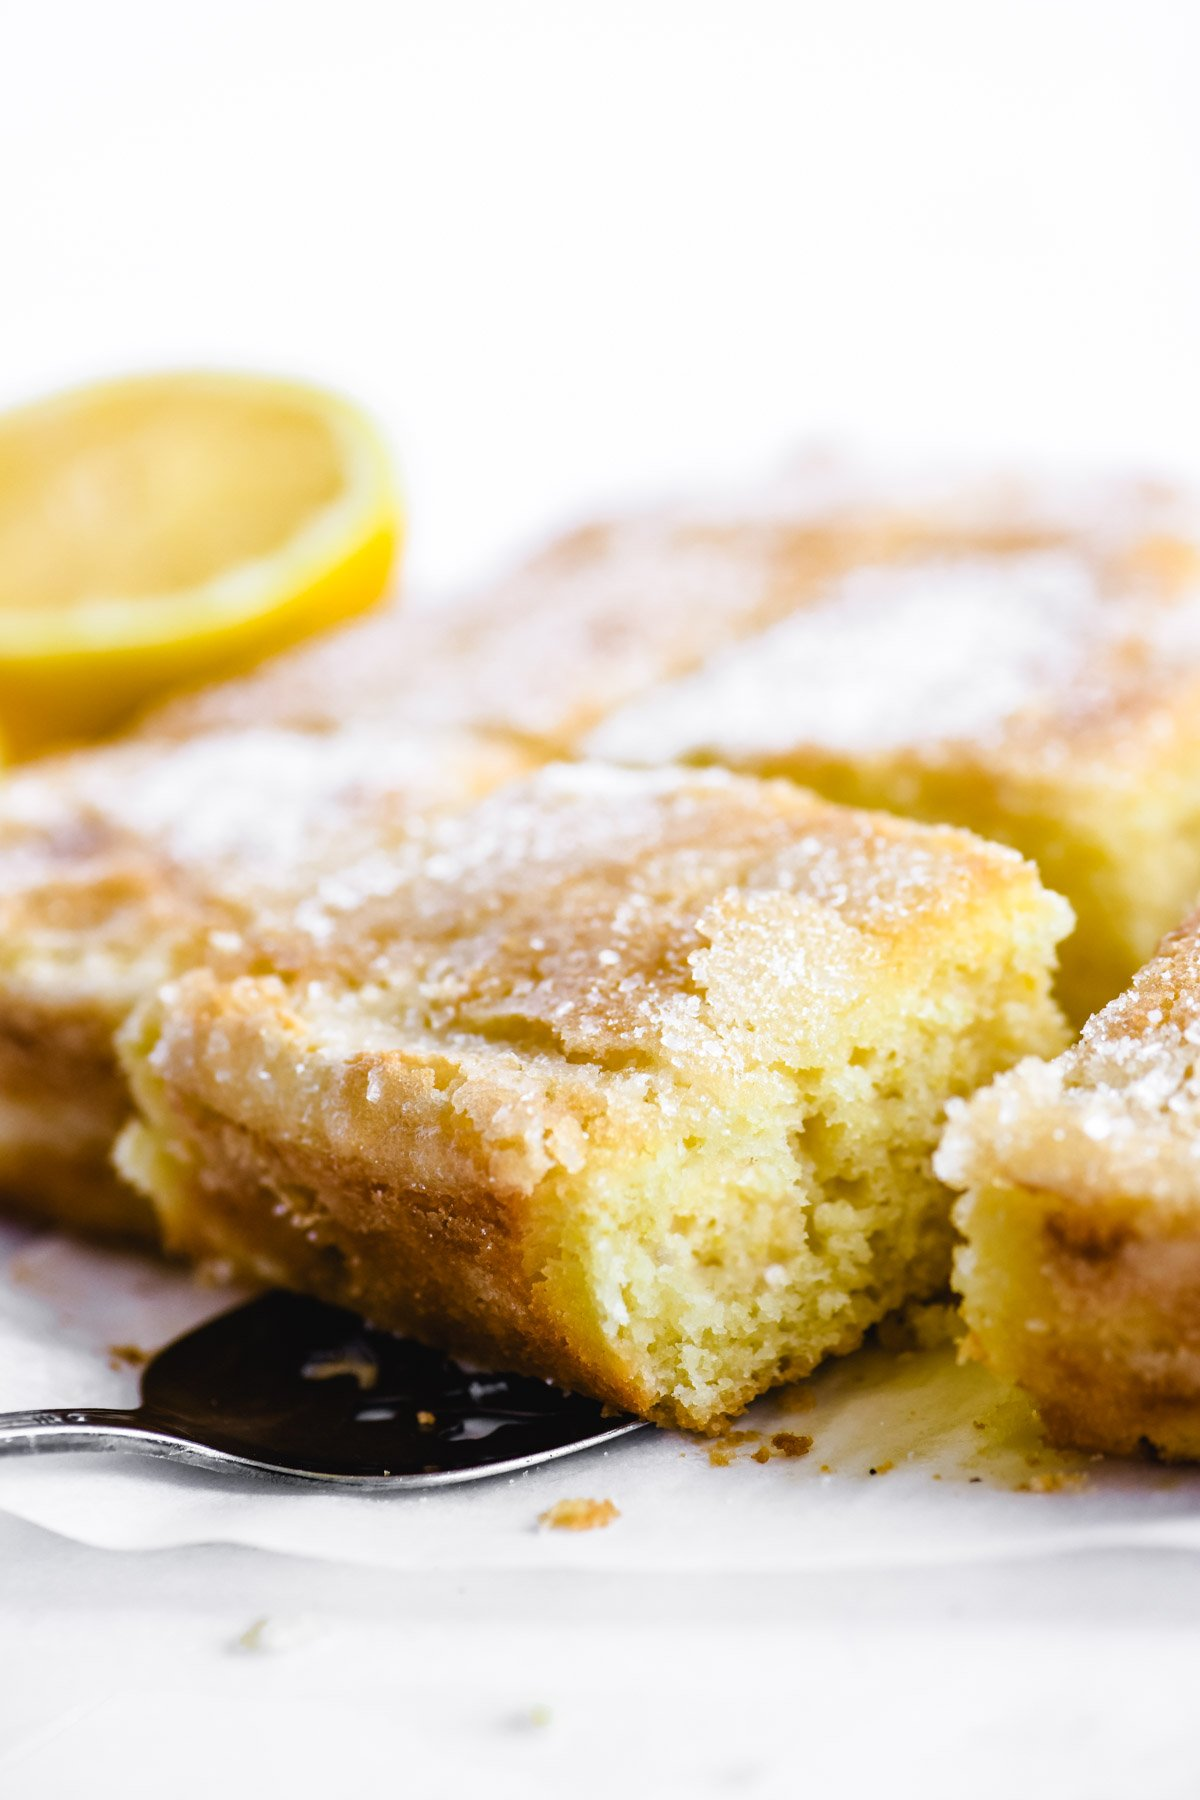 taking a slice of lemon crunch cake with a cake server